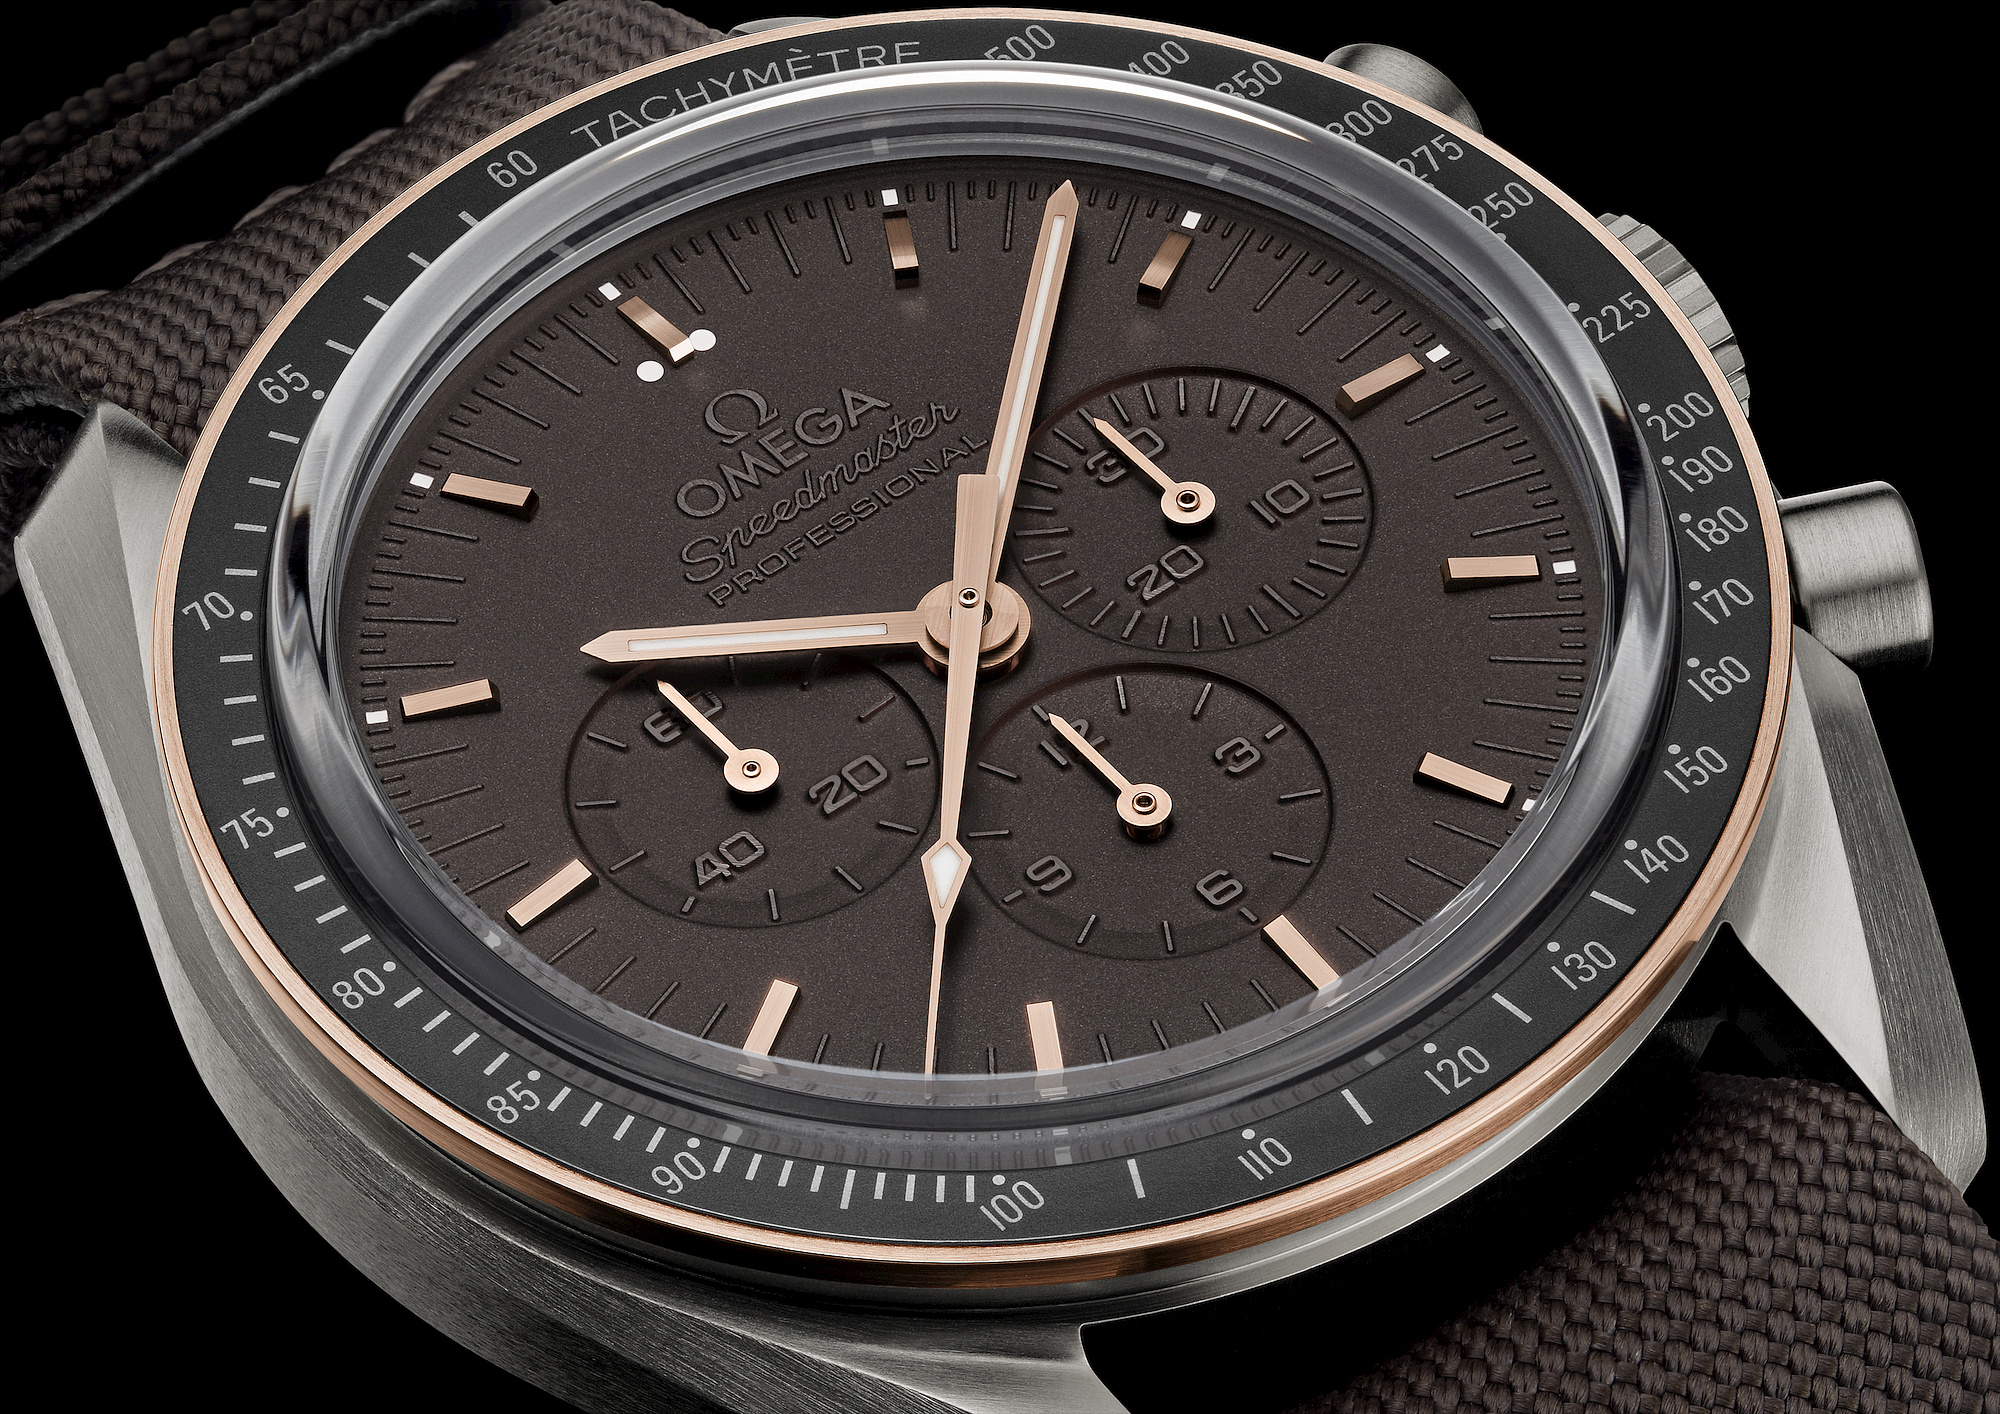 Montre Baselworld 2014 Omega